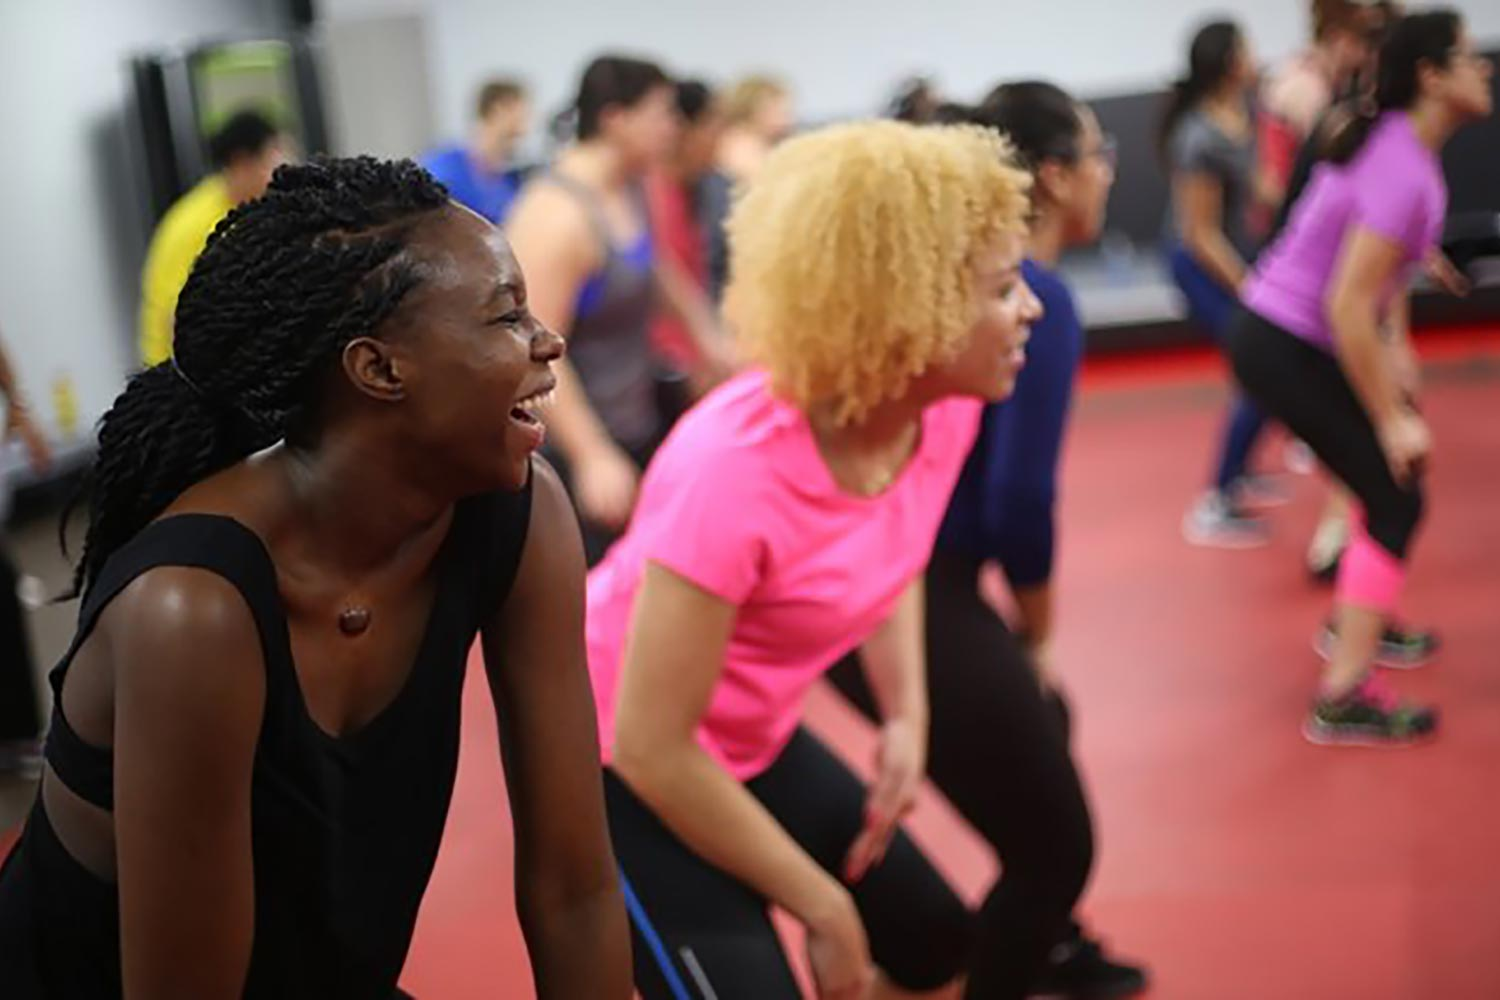 The yard beyonce dance class fitness hackney wick